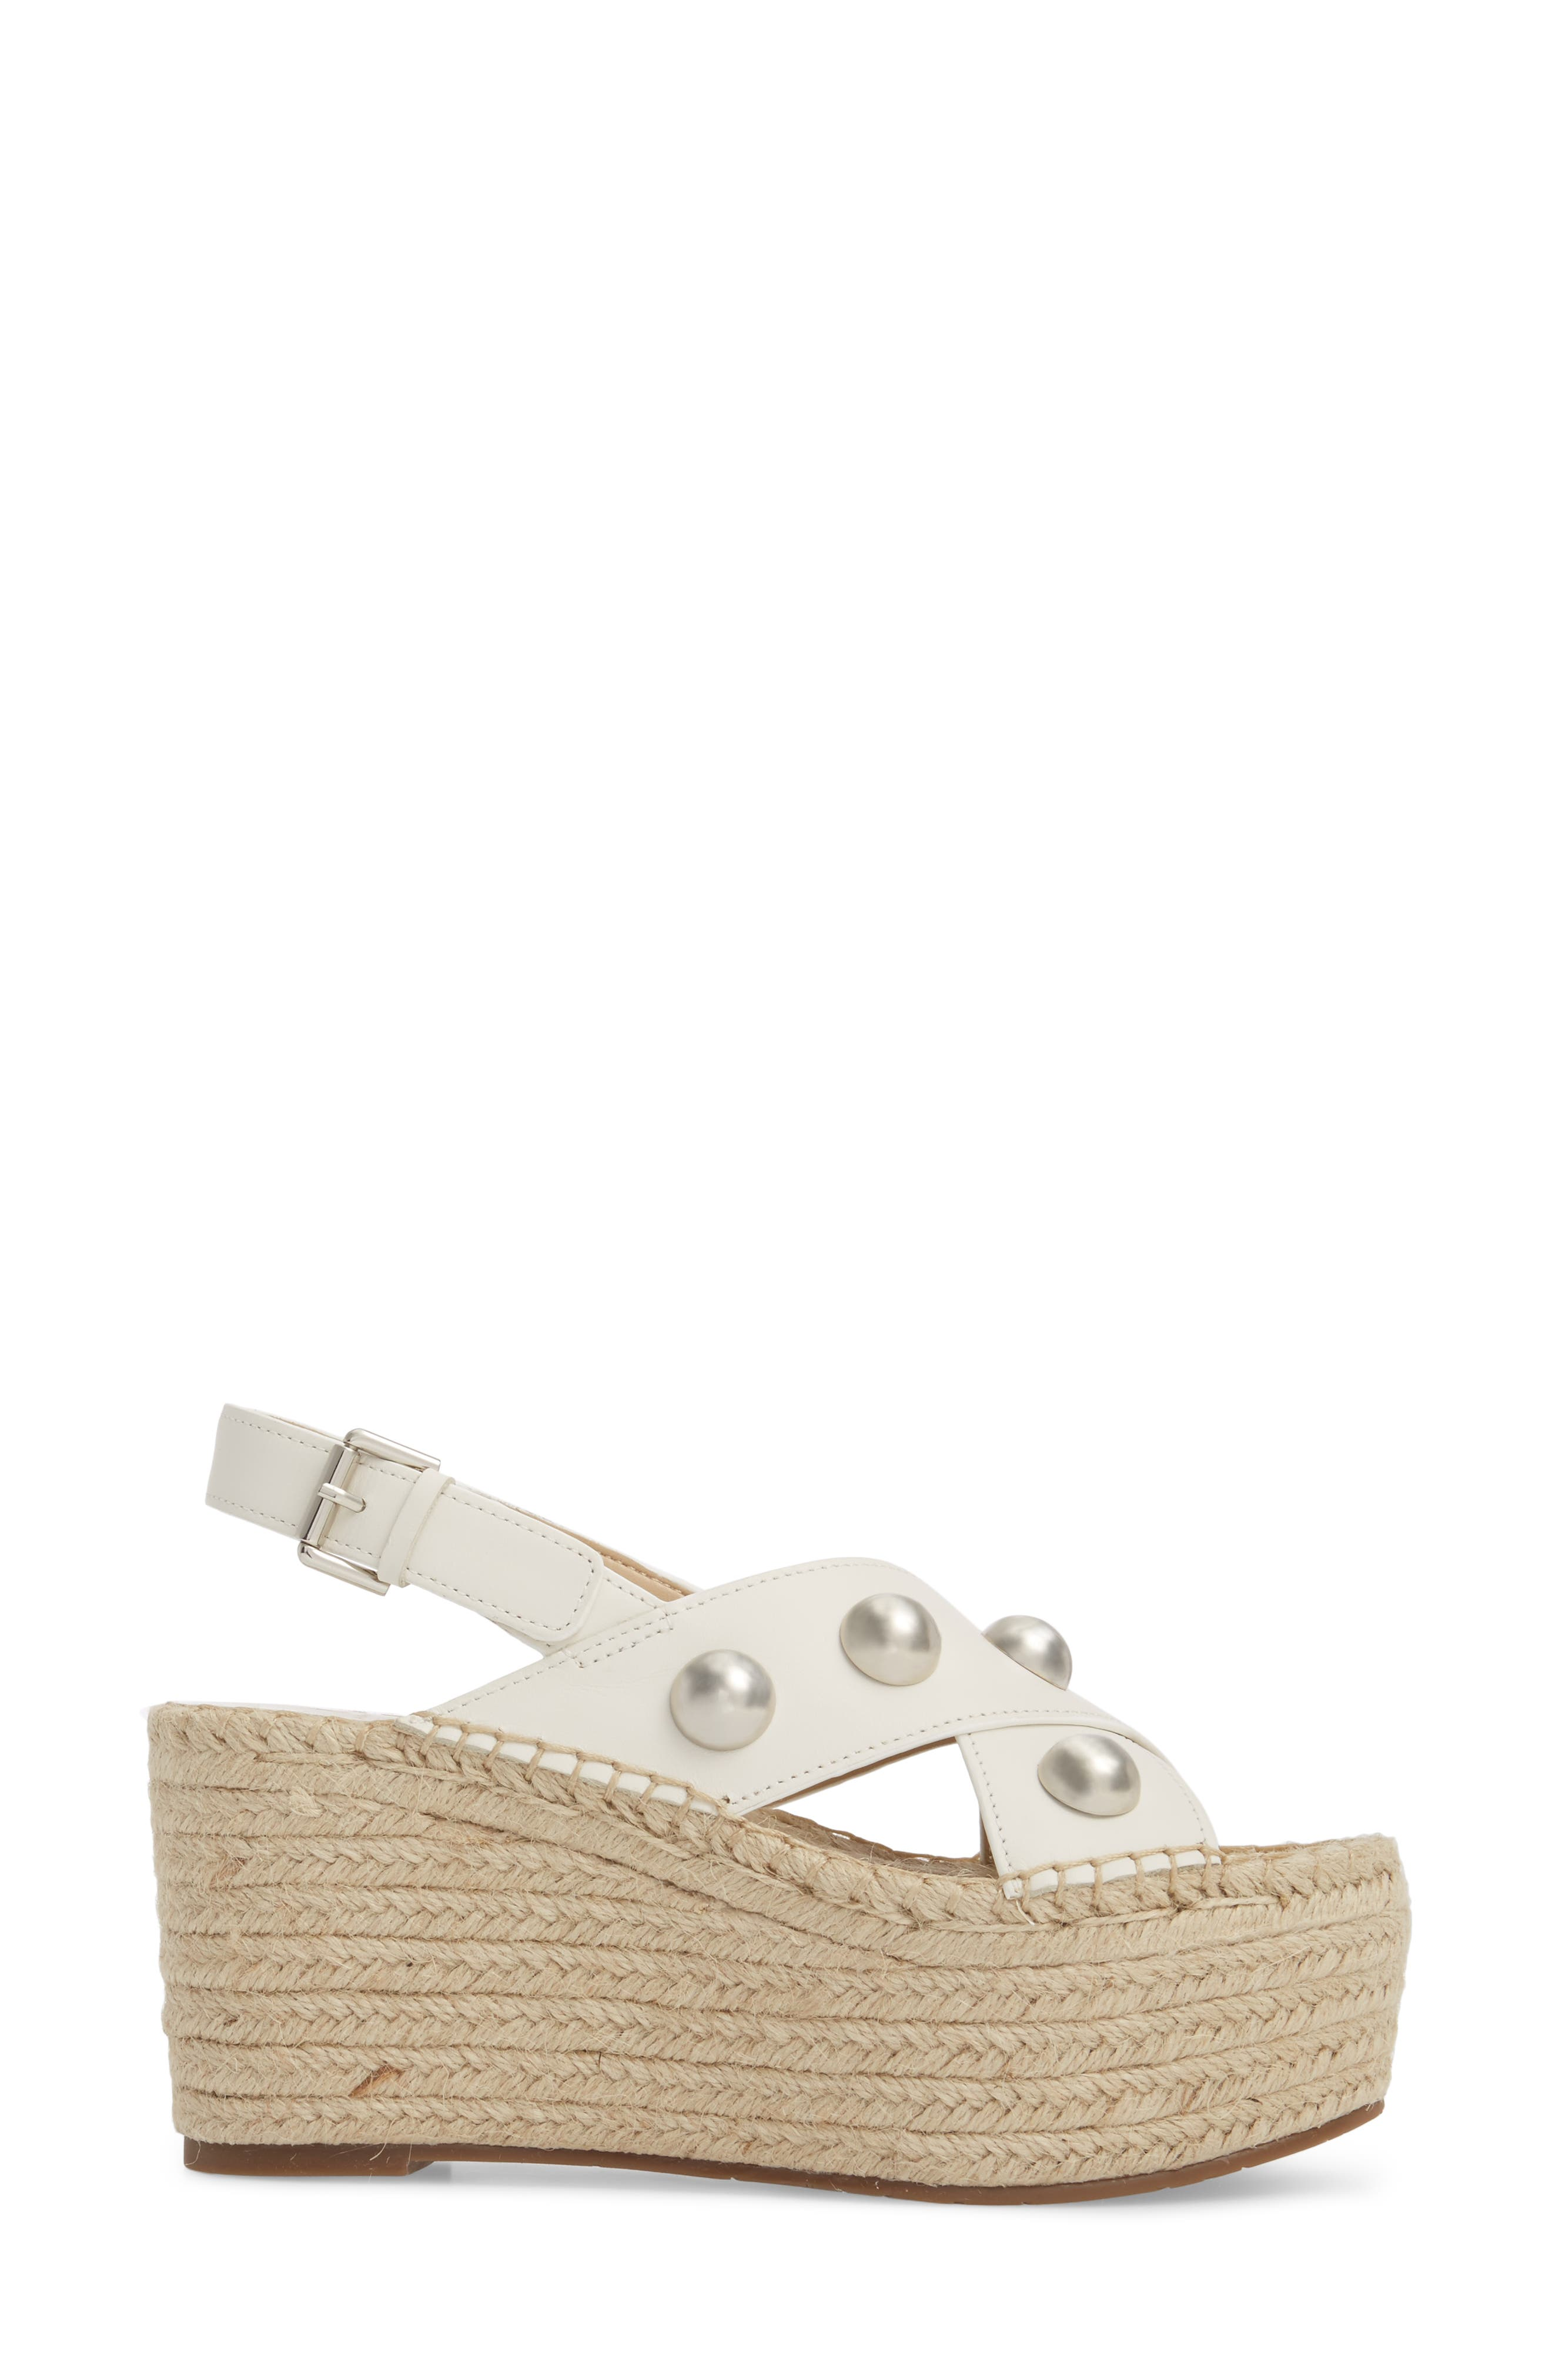 Rella Espadrille Platform Sandal,                             Alternate thumbnail 3, color,                             Ivory Leather